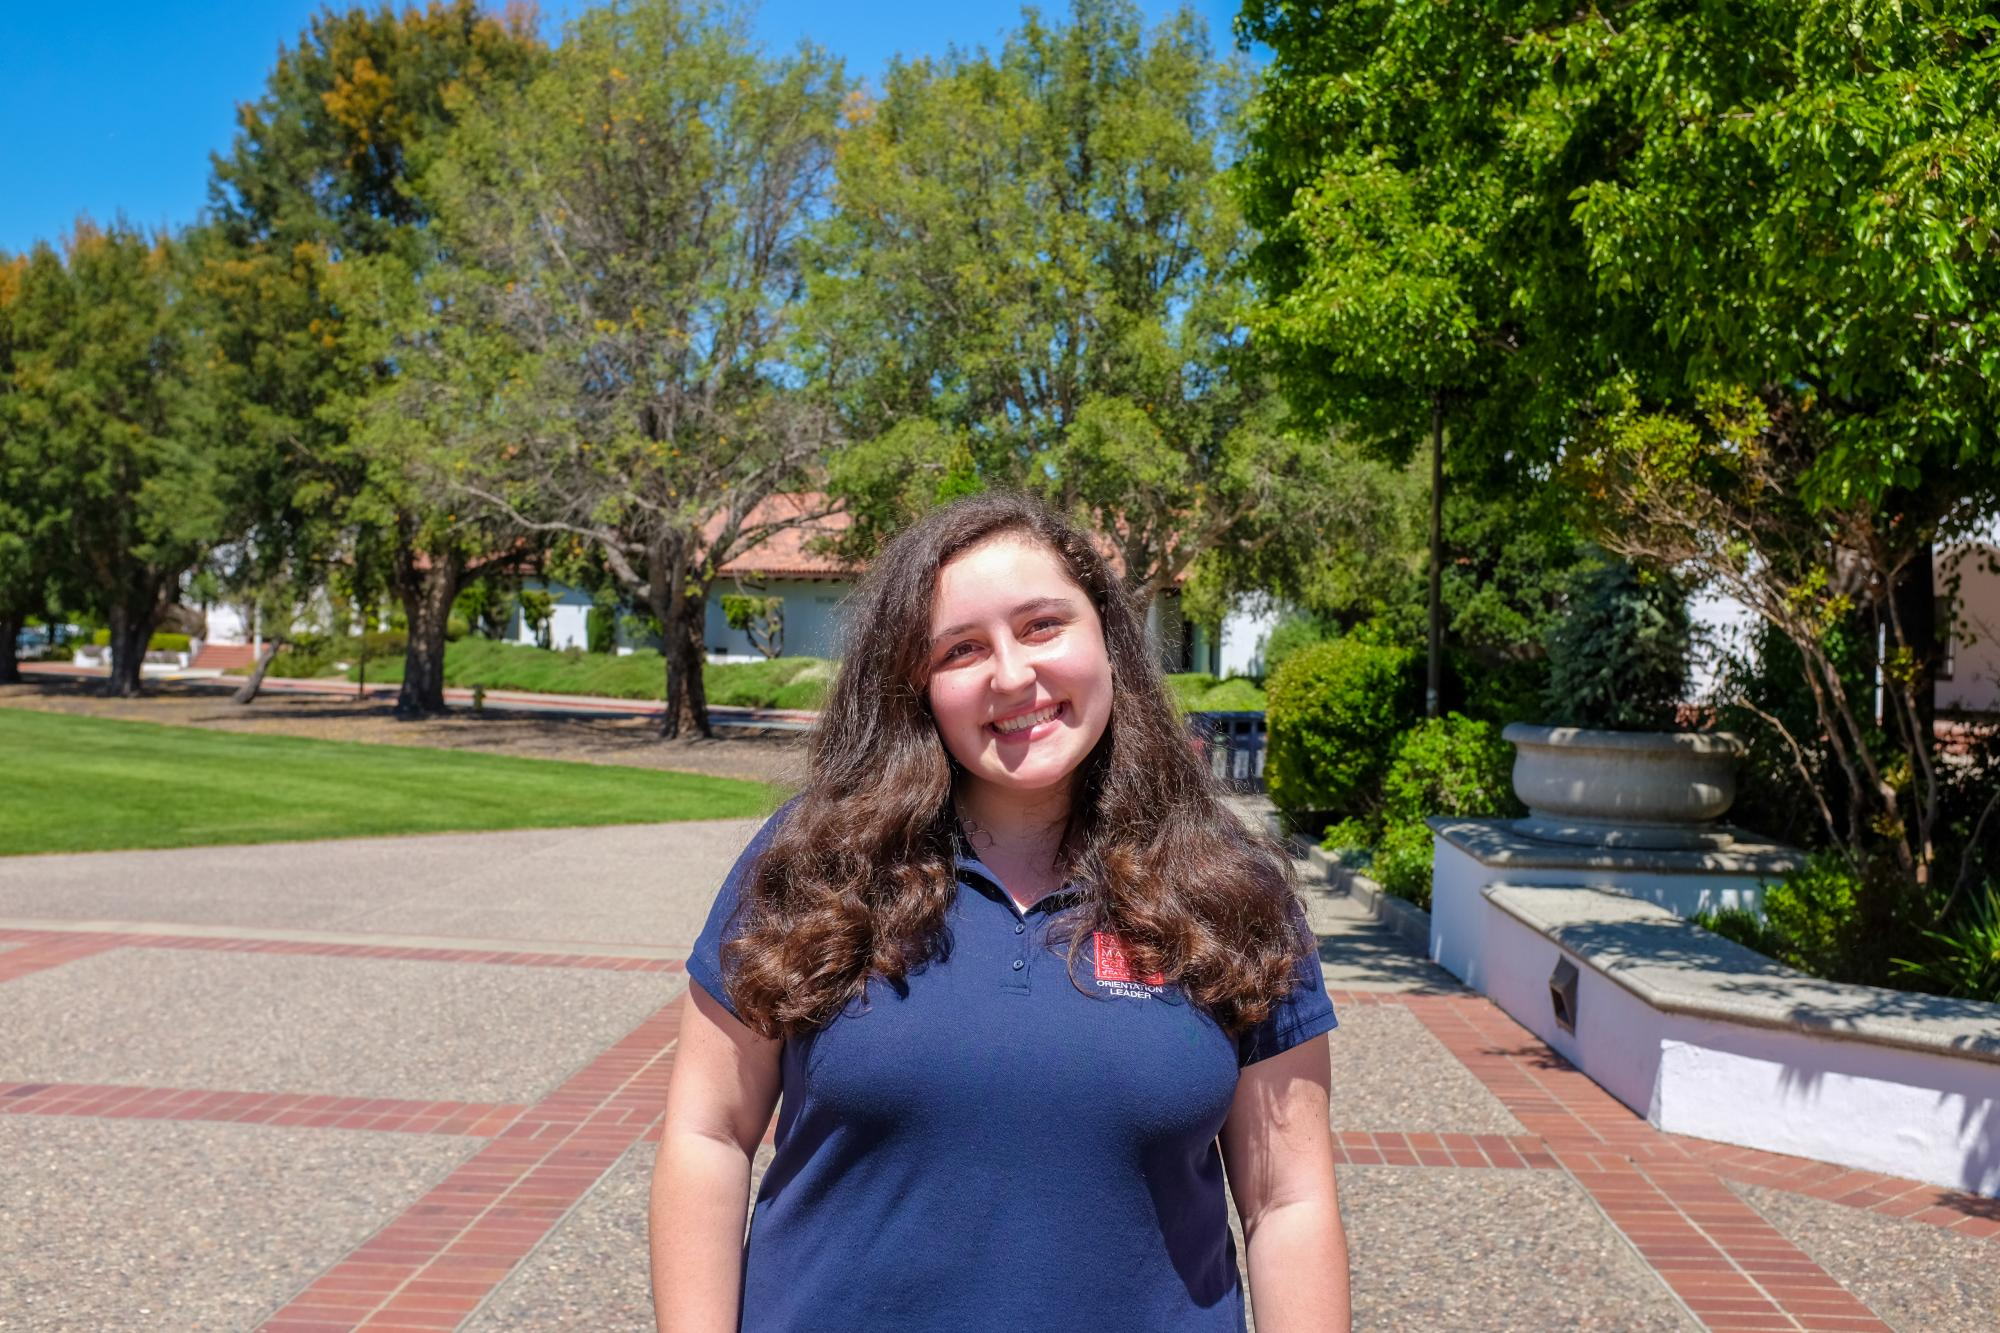 Hey y'all!! I'm Sophia Swinscoe, and I'm from Sacramento, CA, and I'm studying English with an emphasis on Film and Dramatic Arts. I love being a part of the KSMC exec team, the Dante club, & Gael Sisterhood, and I can't wait to hype up new Gaels (and introduce them to all the awesome activities on campus)!